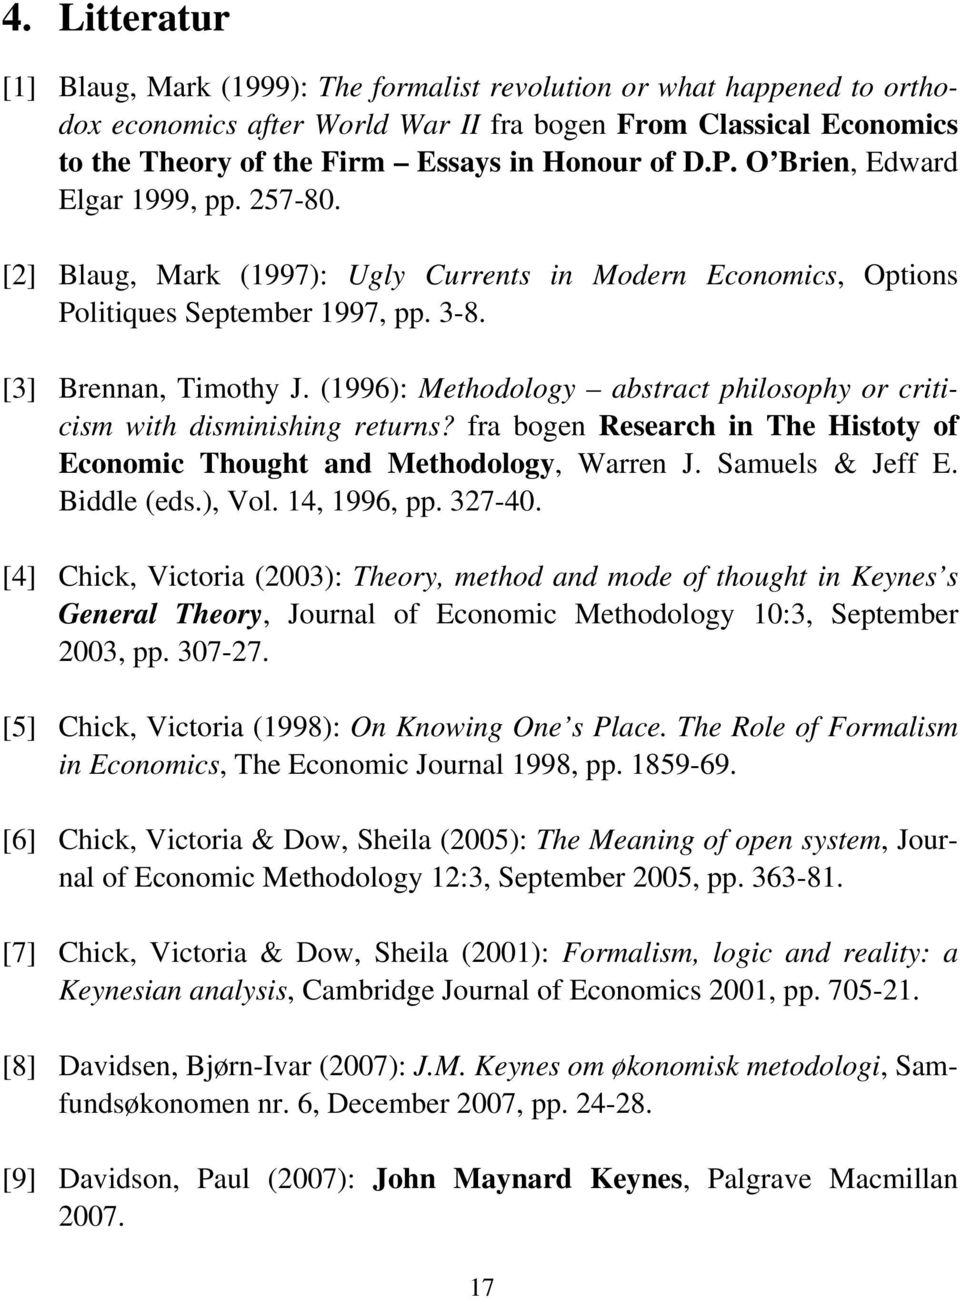 (1996): Methodology abstract philosophy or criticism with disminishing returns? fra bogen Research in The Histoty of Economic Thought and Methodology, Warren J. Samuels & Jeff E. Biddle (eds.), Vol.